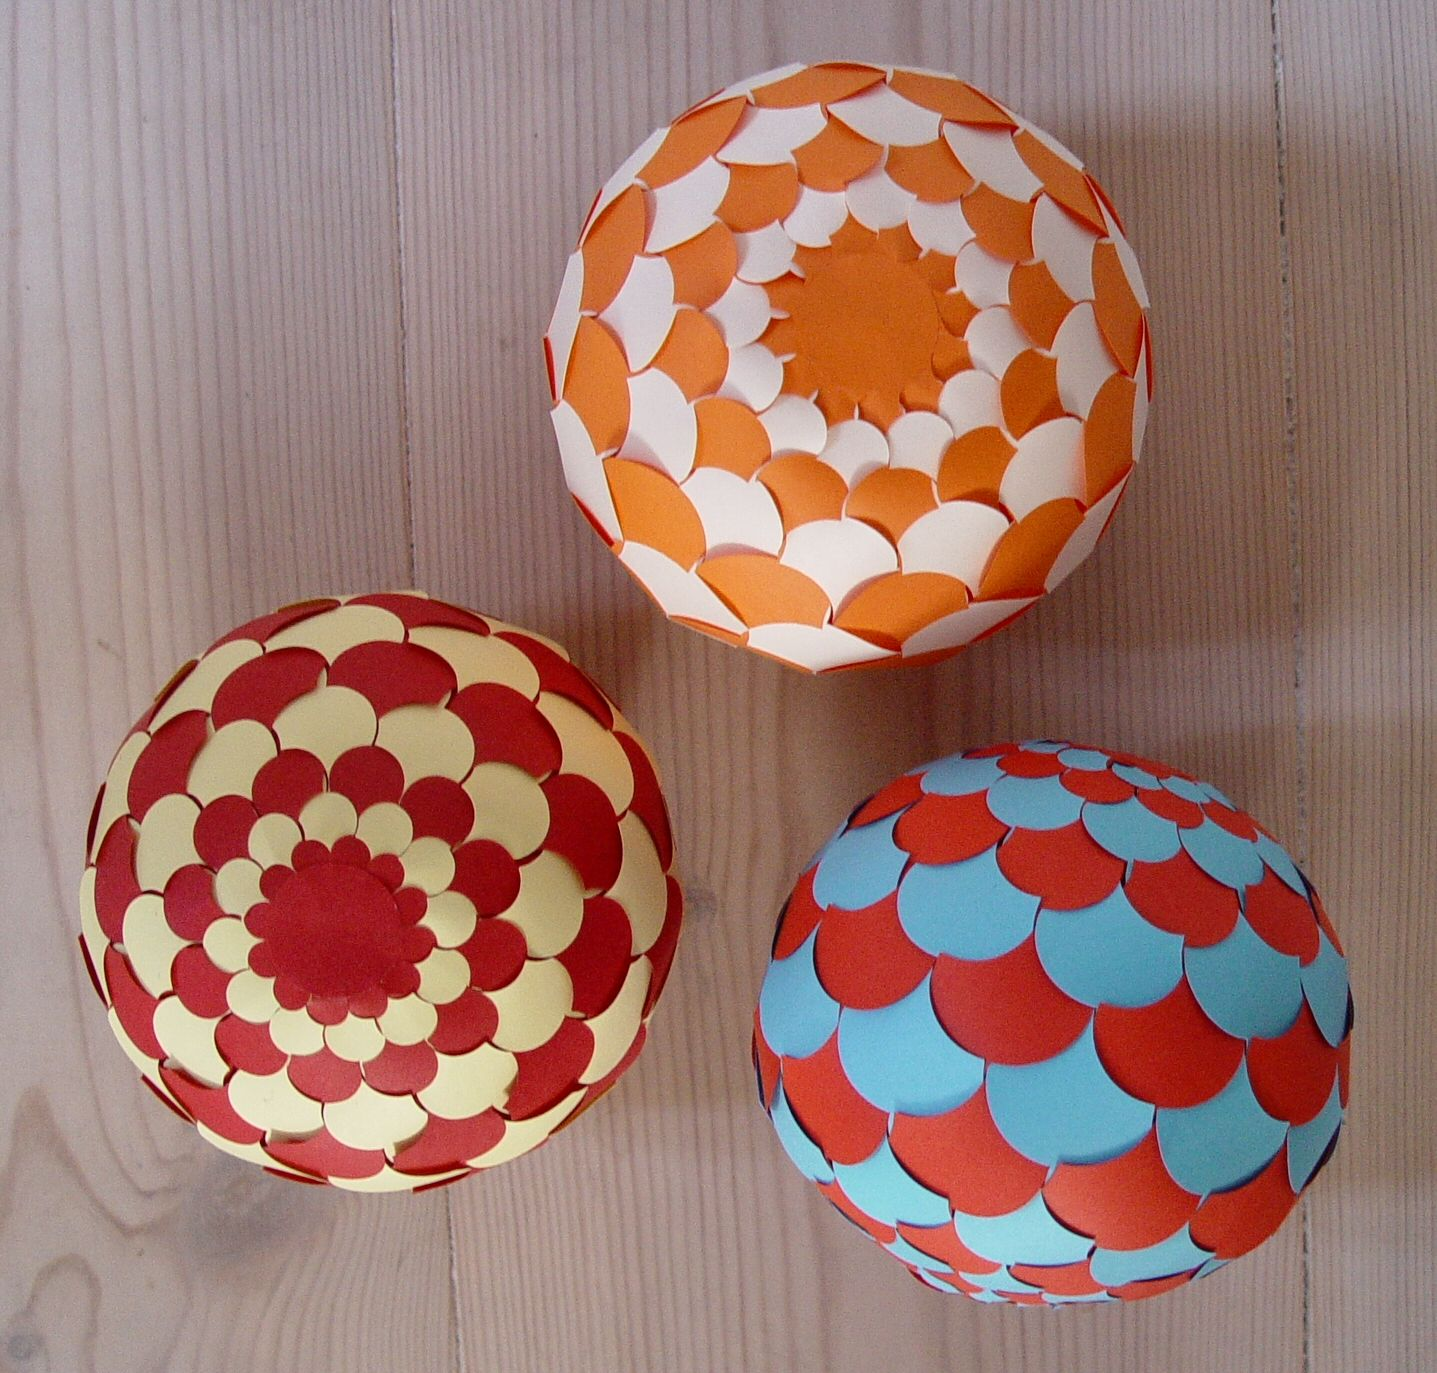 Sphere #002 | Origami Paper Folding Cut Paper Instructions ... - photo#14